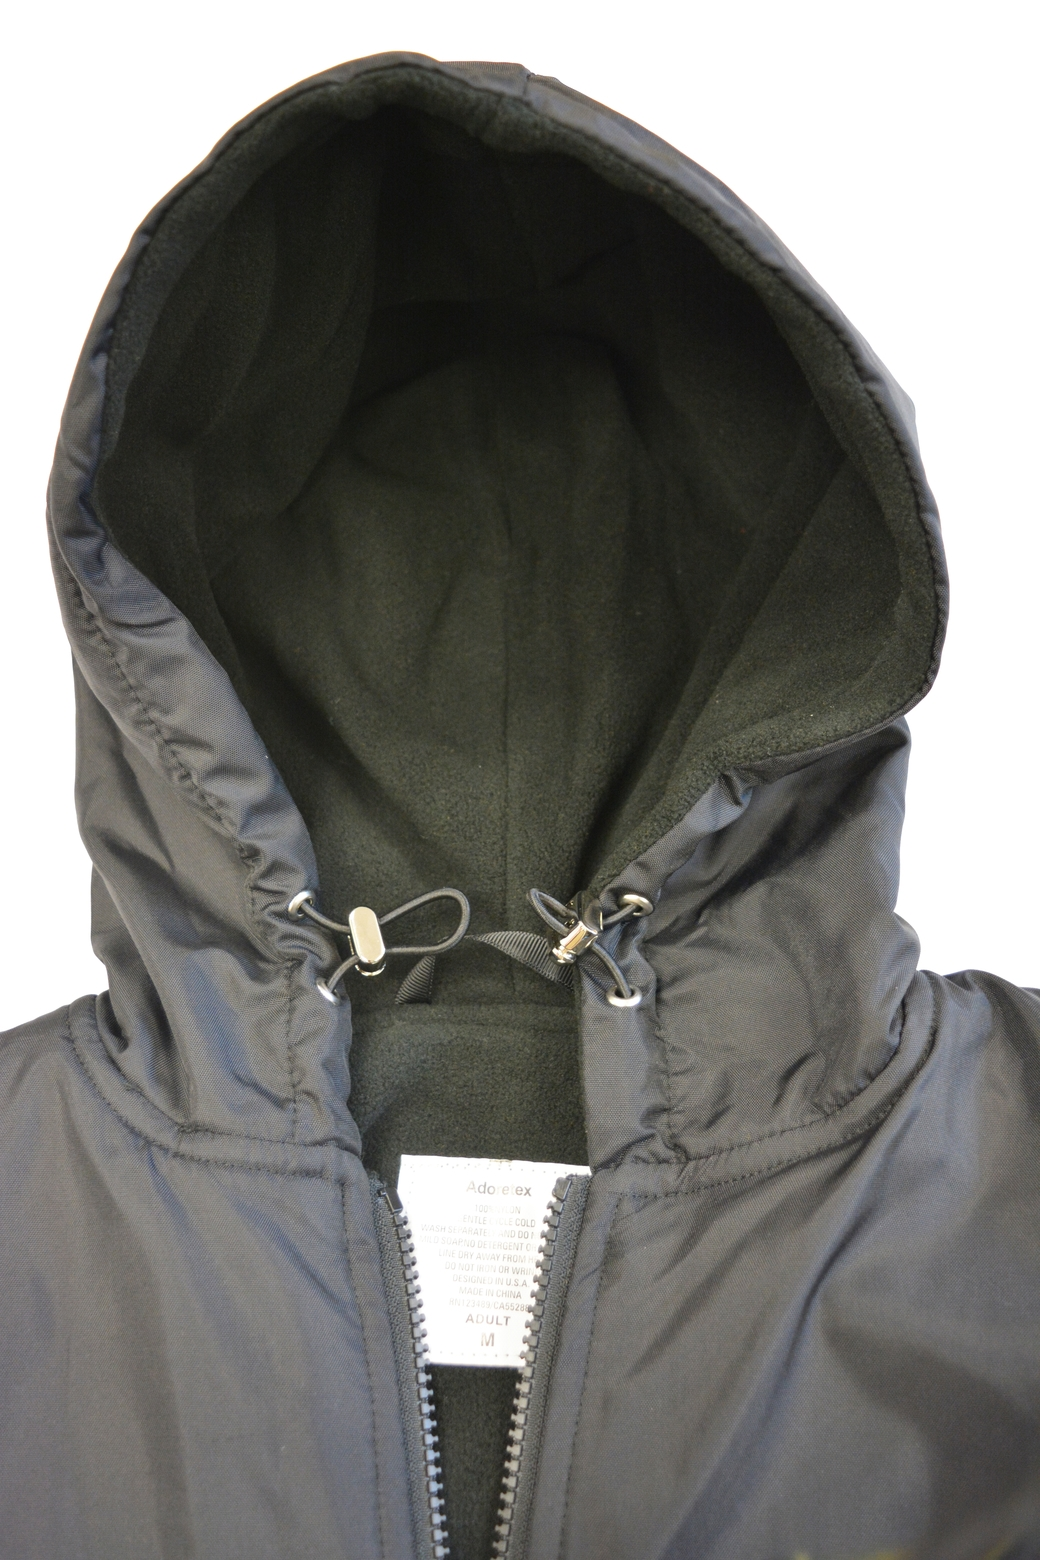 Adoretex Solid Swim Parka at Sunwavesports.com